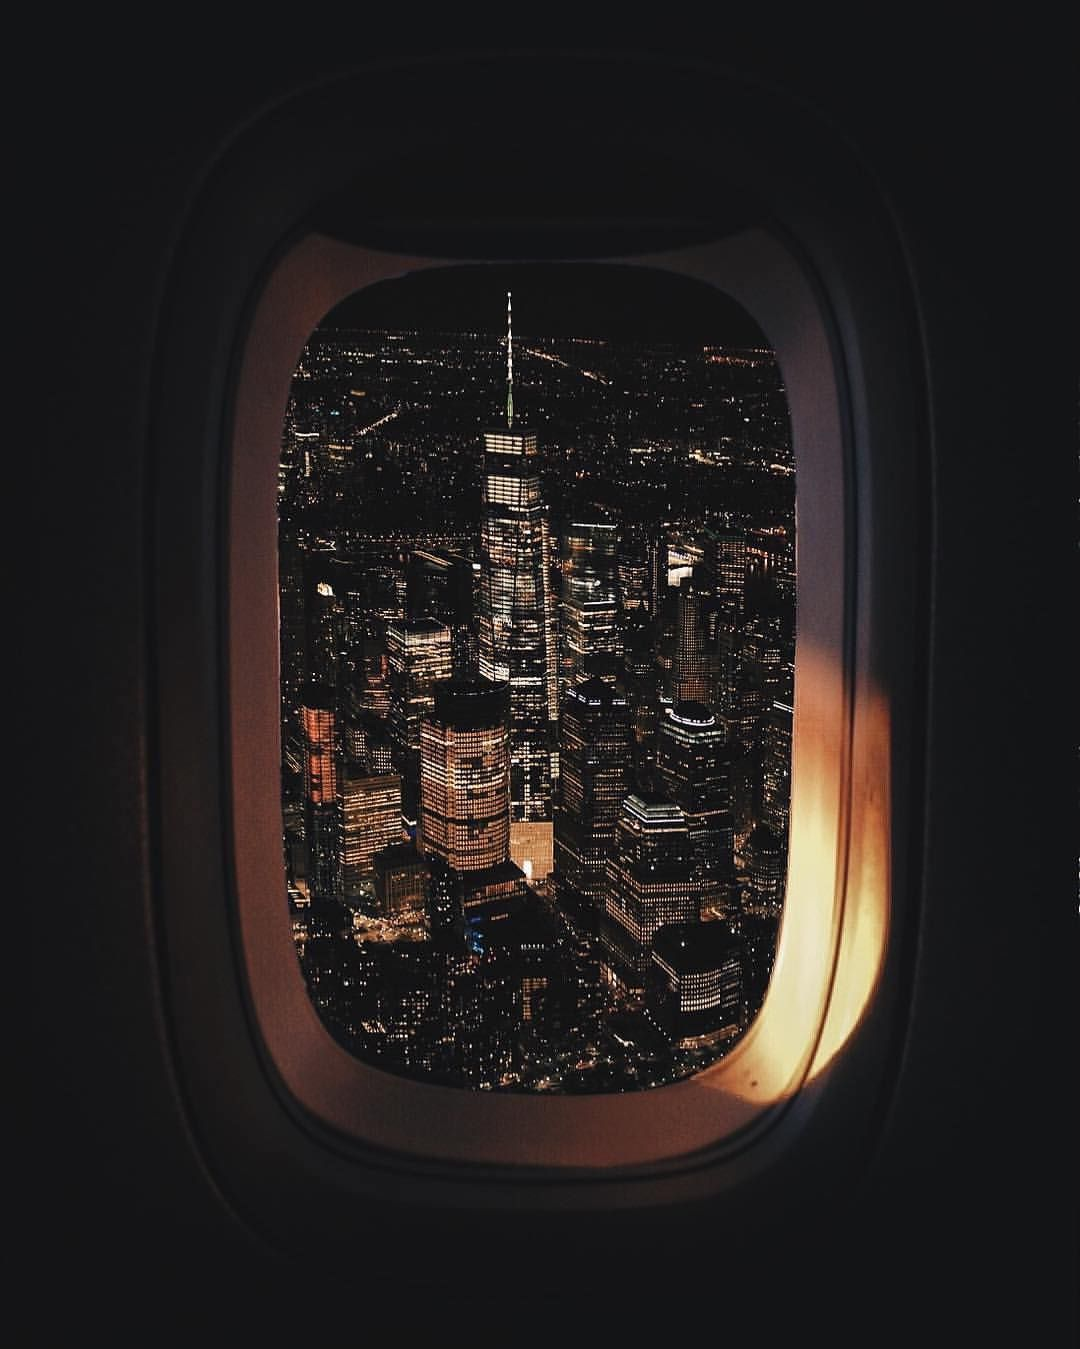 4 932 Likes 48 Comments Nycgo Nycgo On Instagram Another Spectacular Plane Window View Of Nyc This One Perfectly F Plane Window View Plane Window City